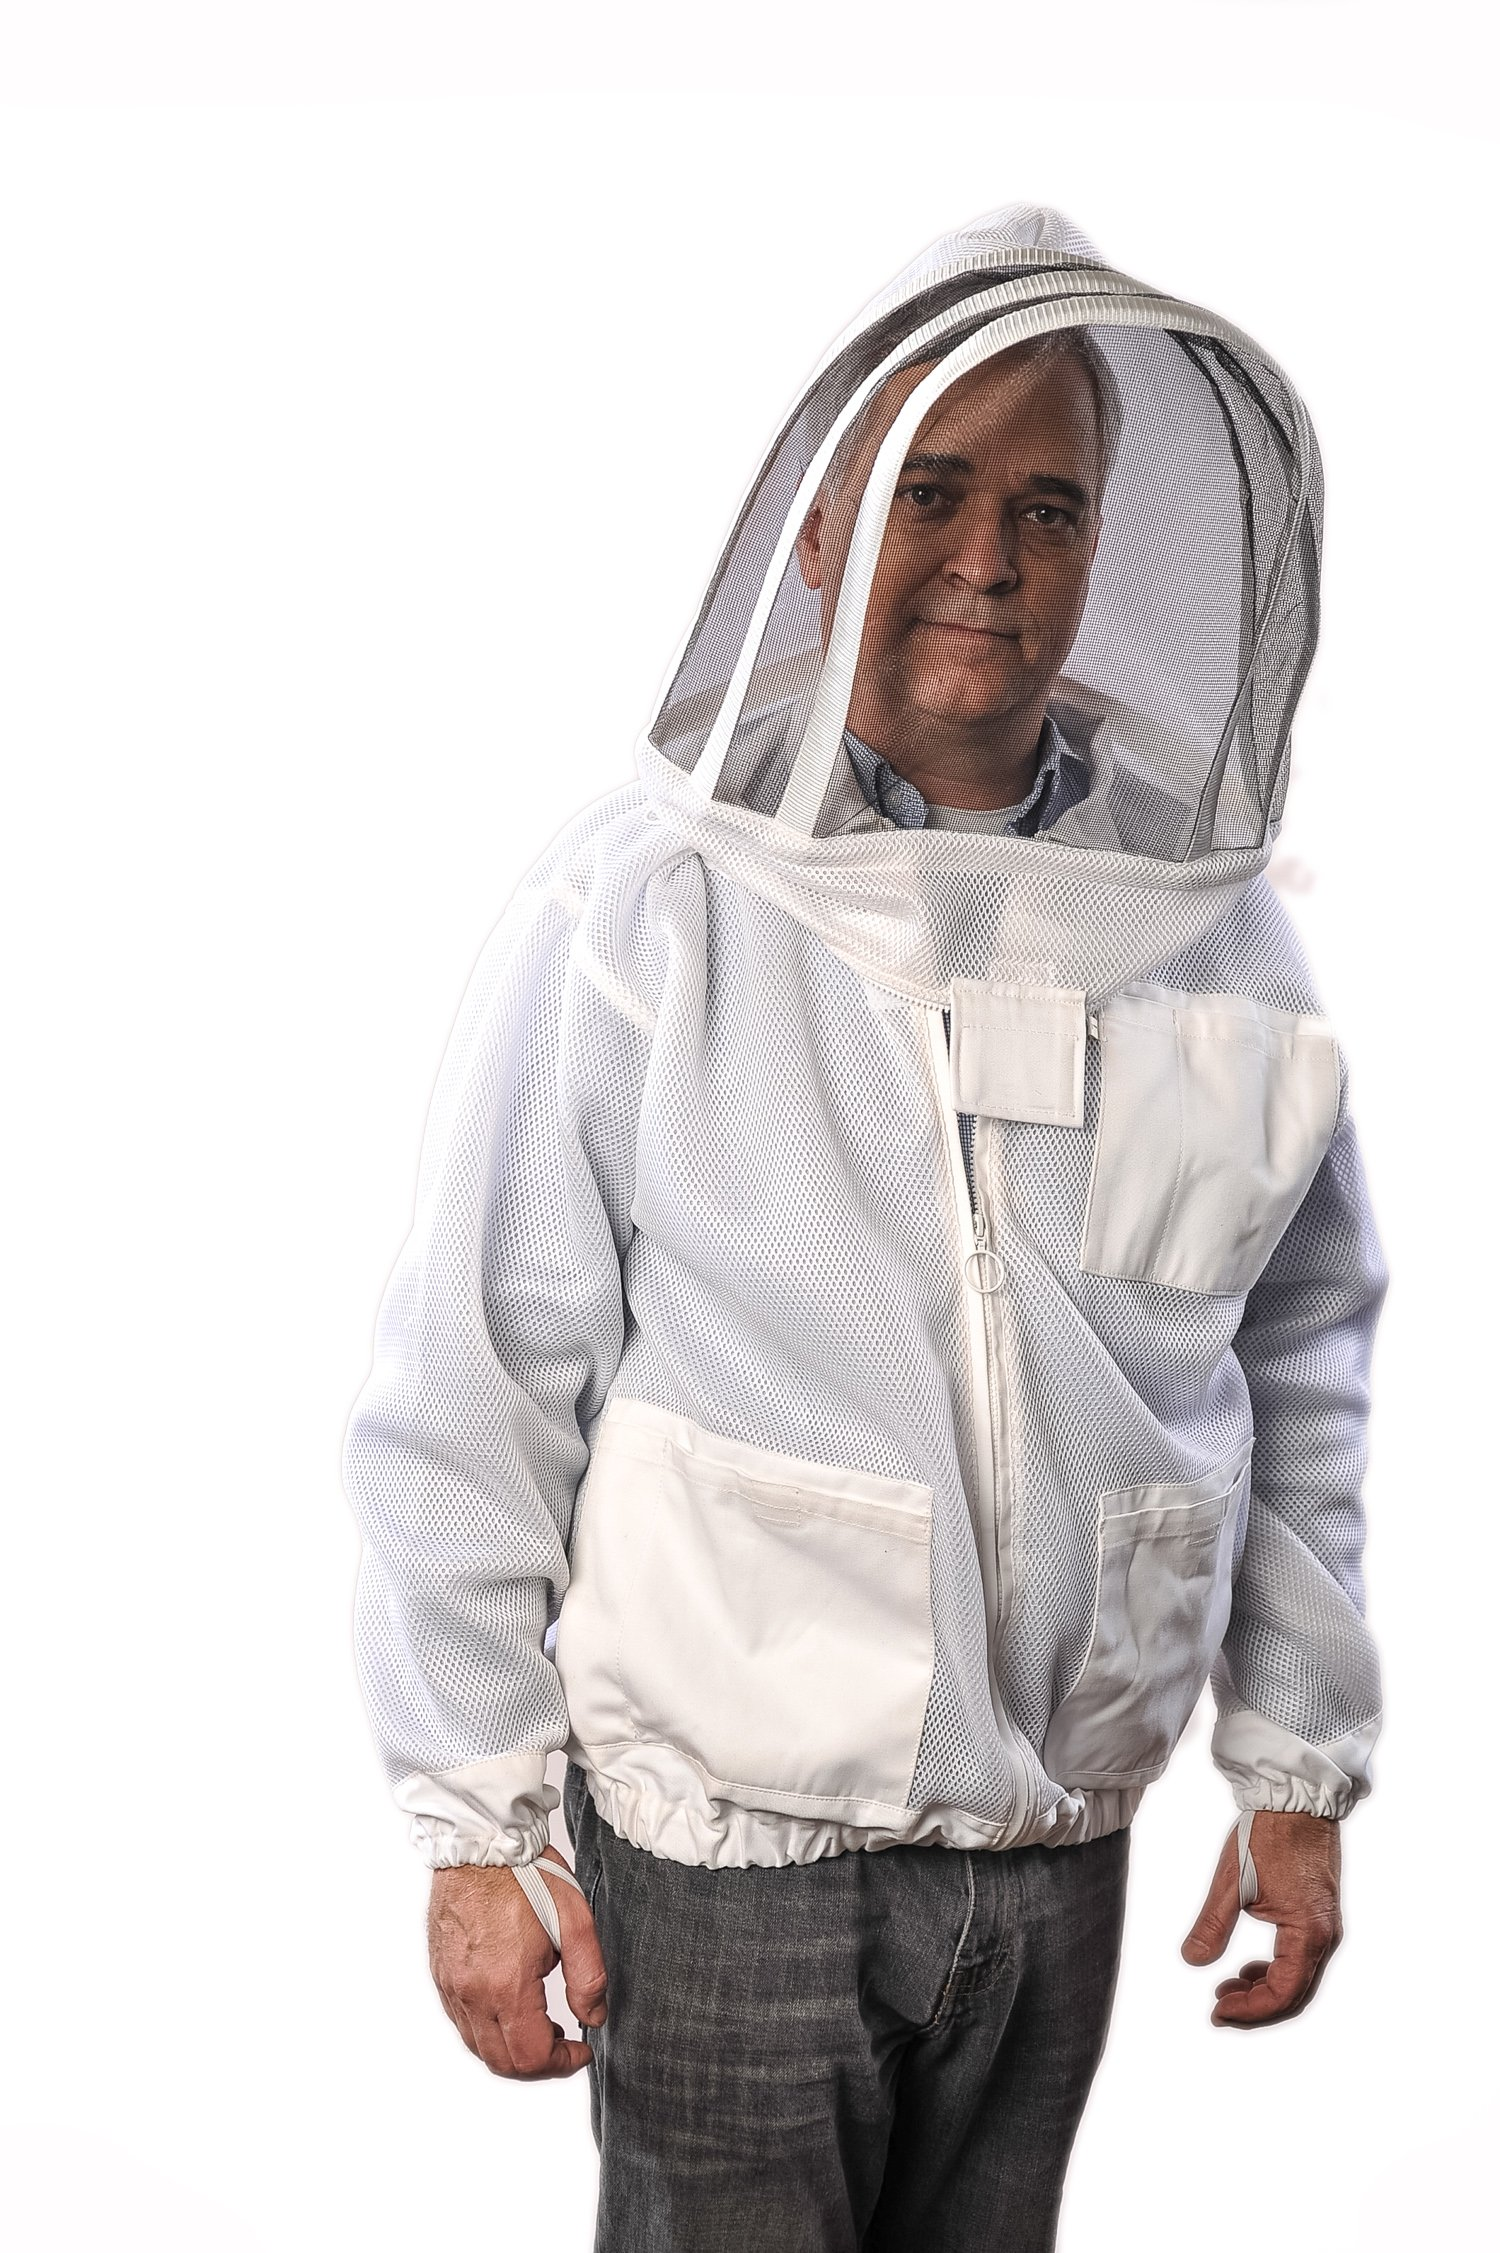 FOREST BEEKEEPING Ventilated Jacket - Clear View Fencing Veil YKK Brass zippers Ultra Light Weight & Maximum Protection Professional & Beginner Beekeepers (XS) by FOREST BEEKEEPING SUPPLY